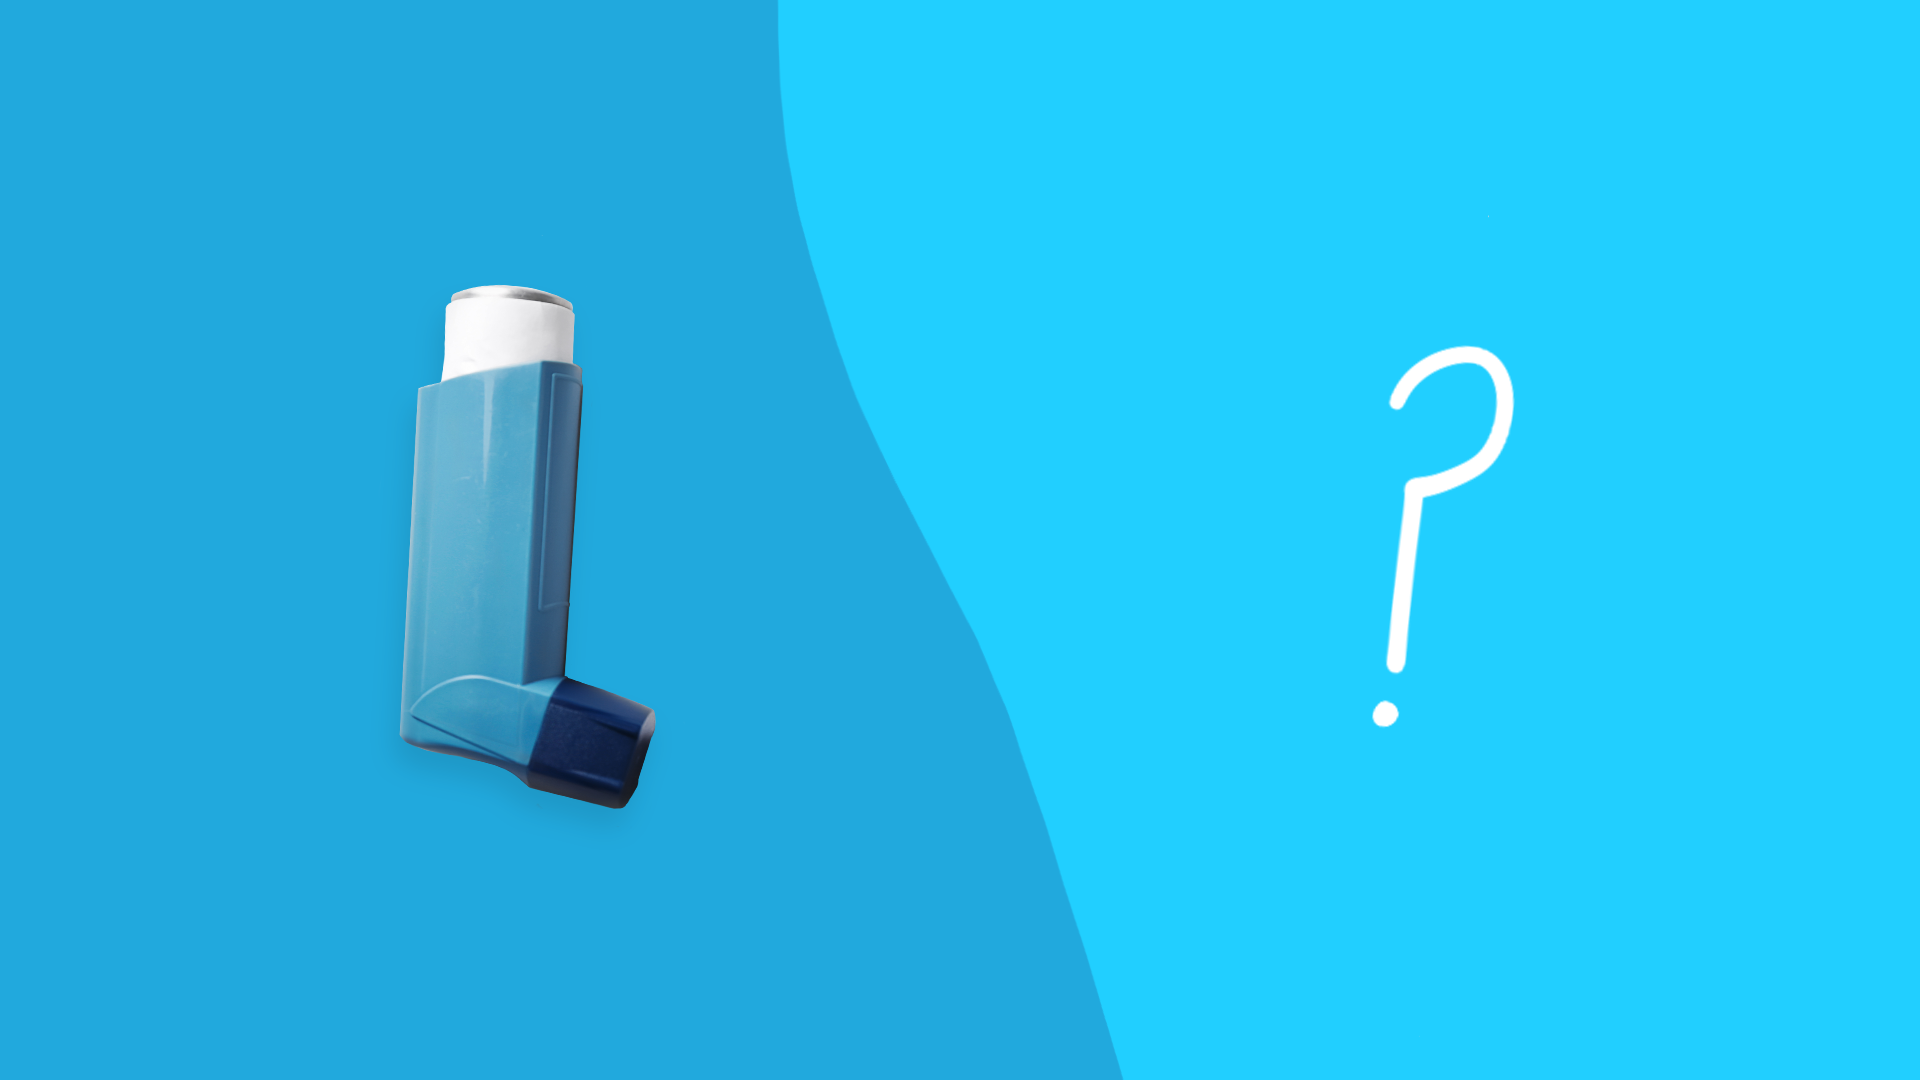 COPD vs. asthma: Which is worse?